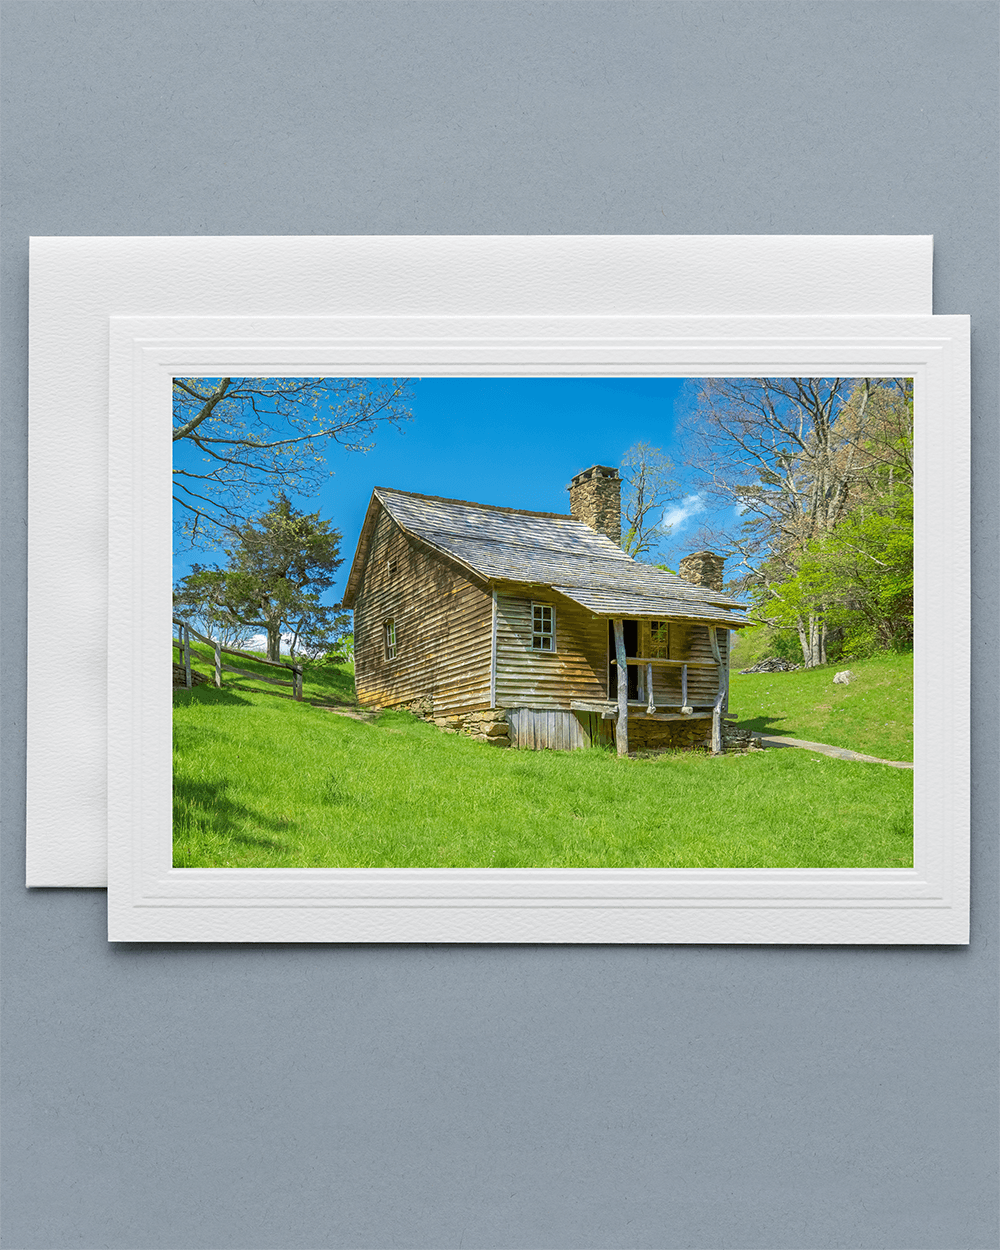 Send a lovely Greeting Card with a real photograph of the Brinegar Cabin - All Greeting Cards are handmade by us in the U.S.A.